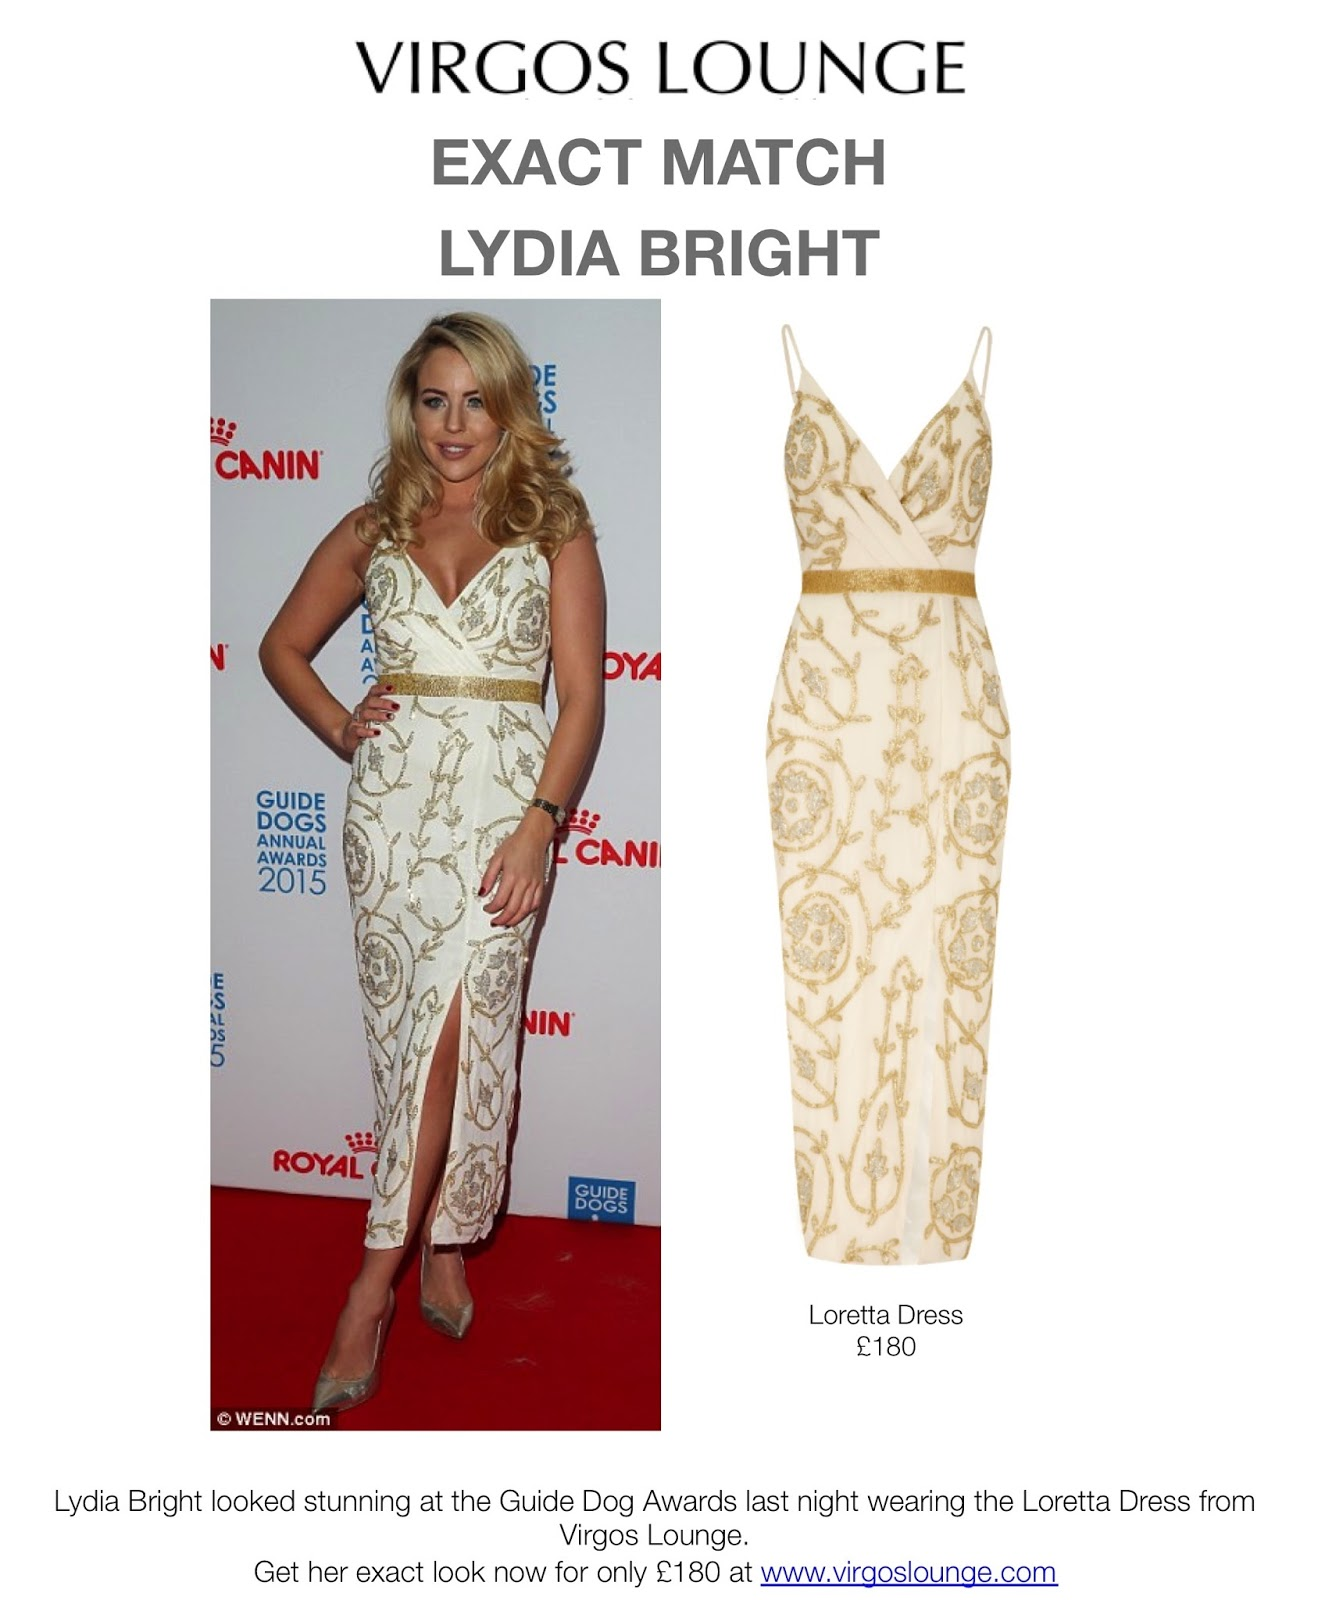 frumpy to funky: EXACT MATCH - Lydia Bright in Virgos Lounge dress